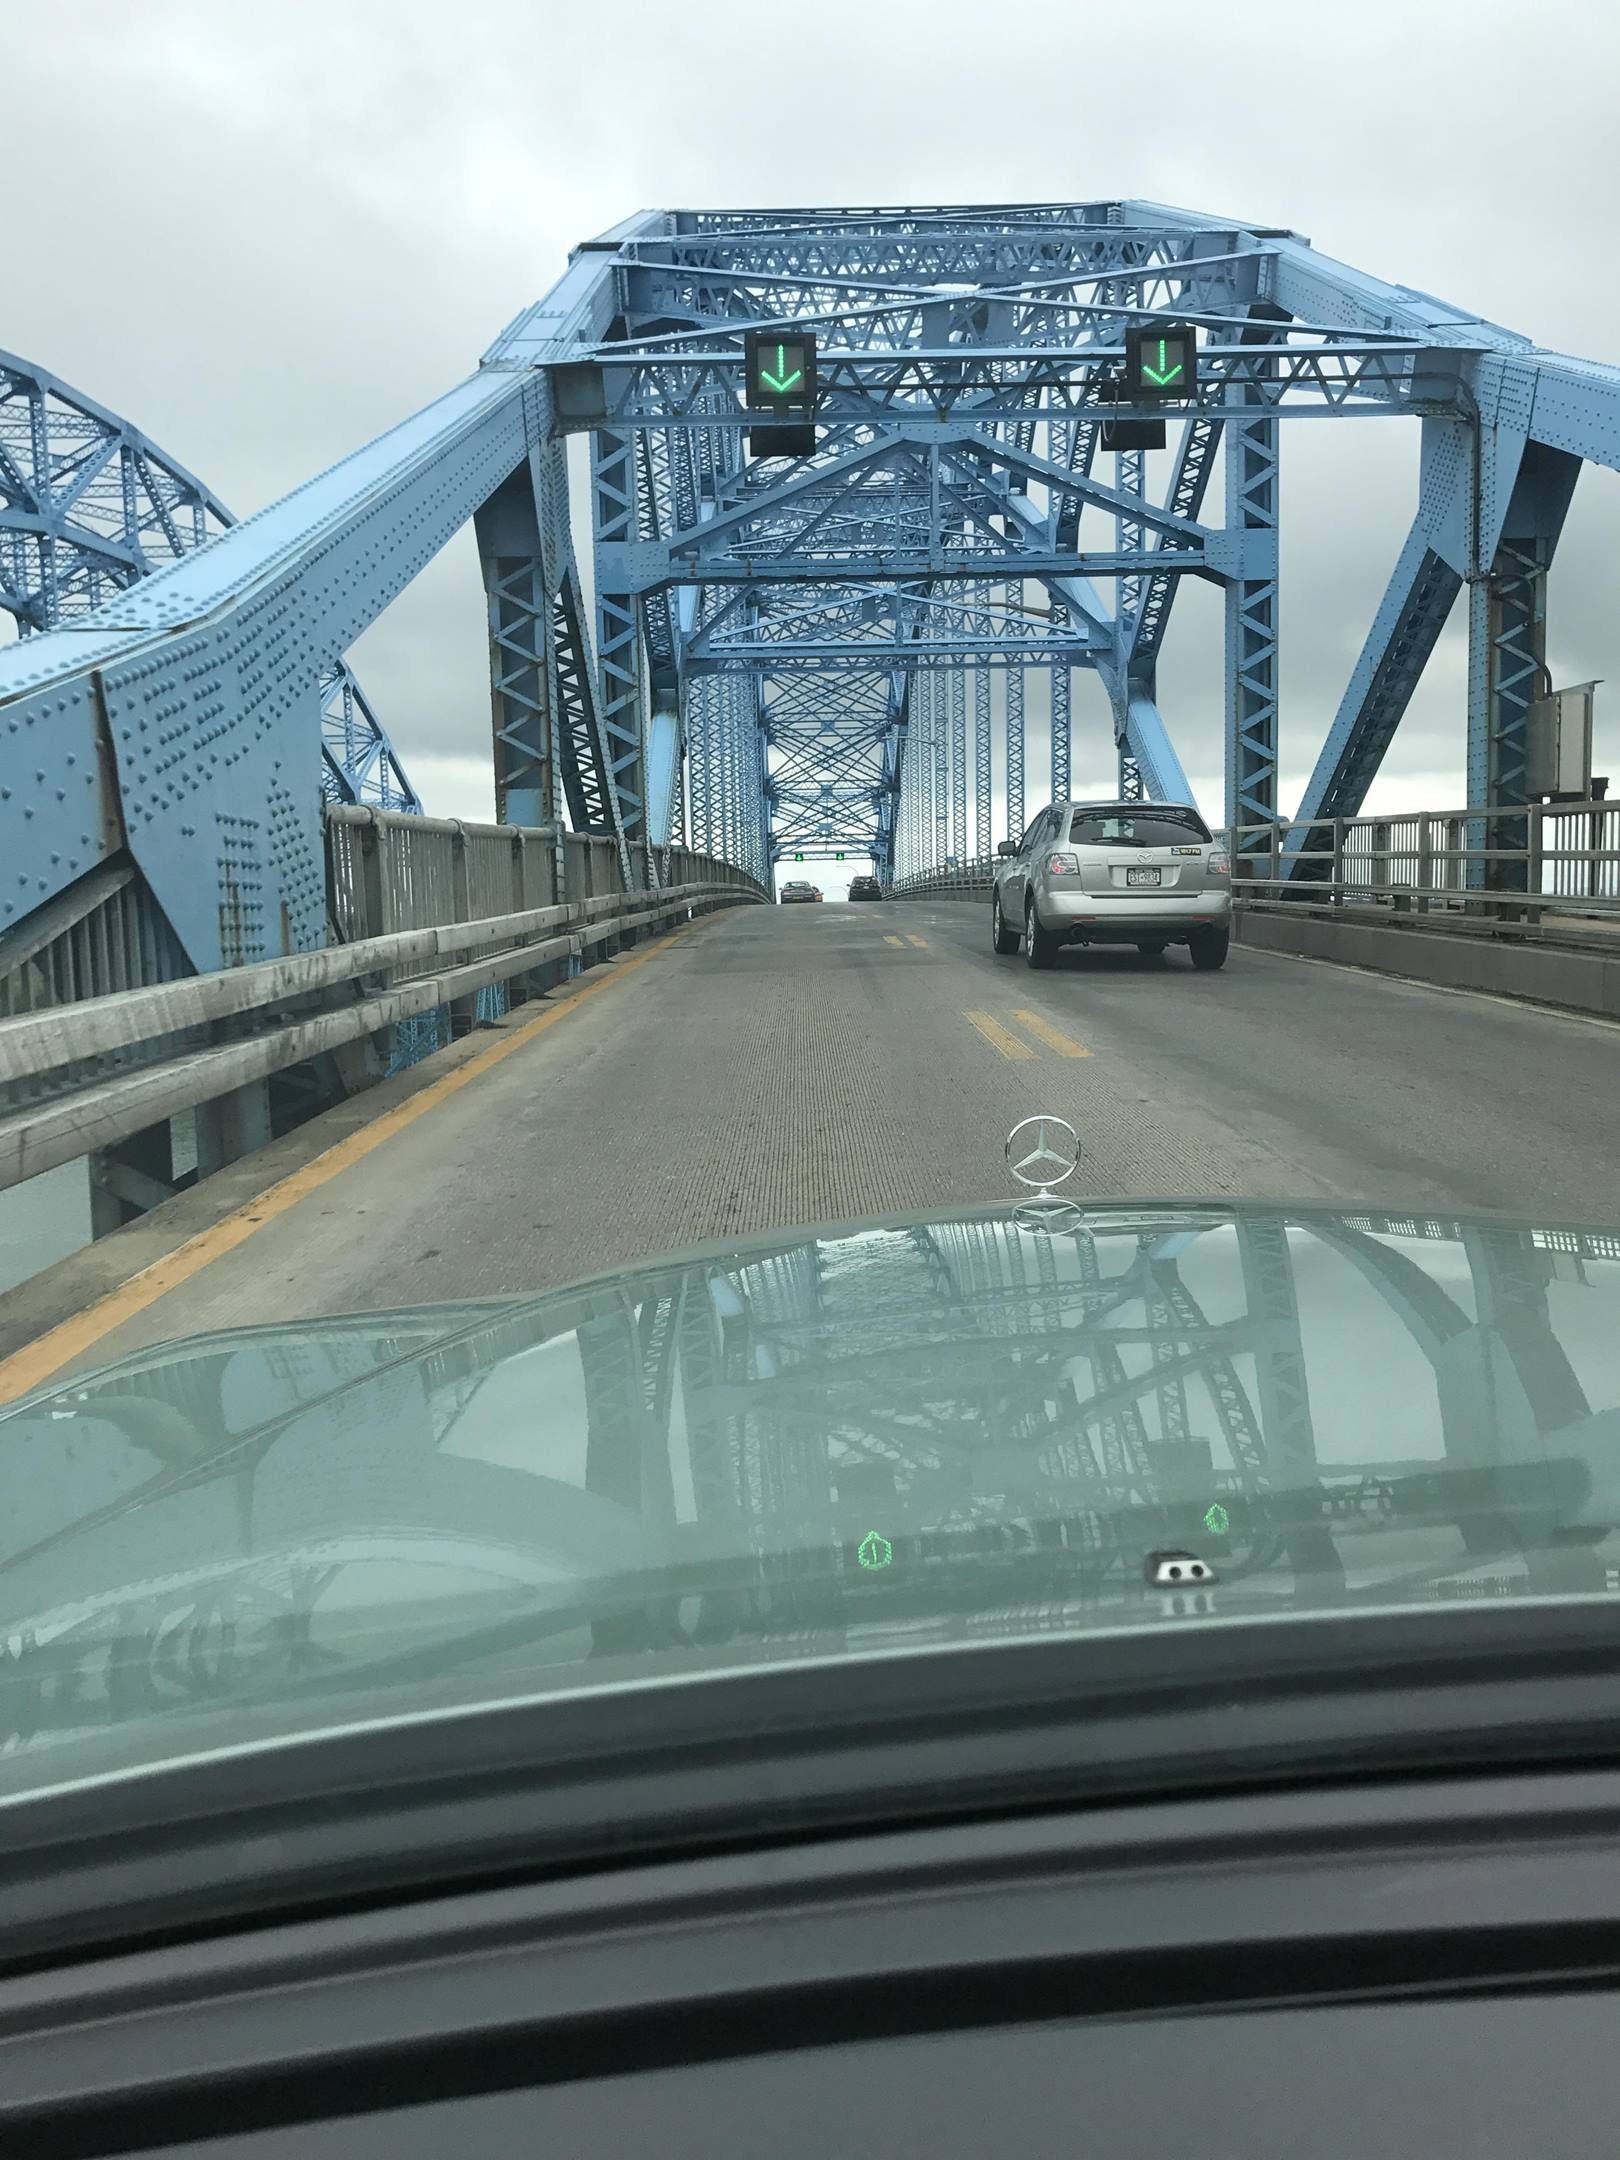 crossing the bridge into the United States